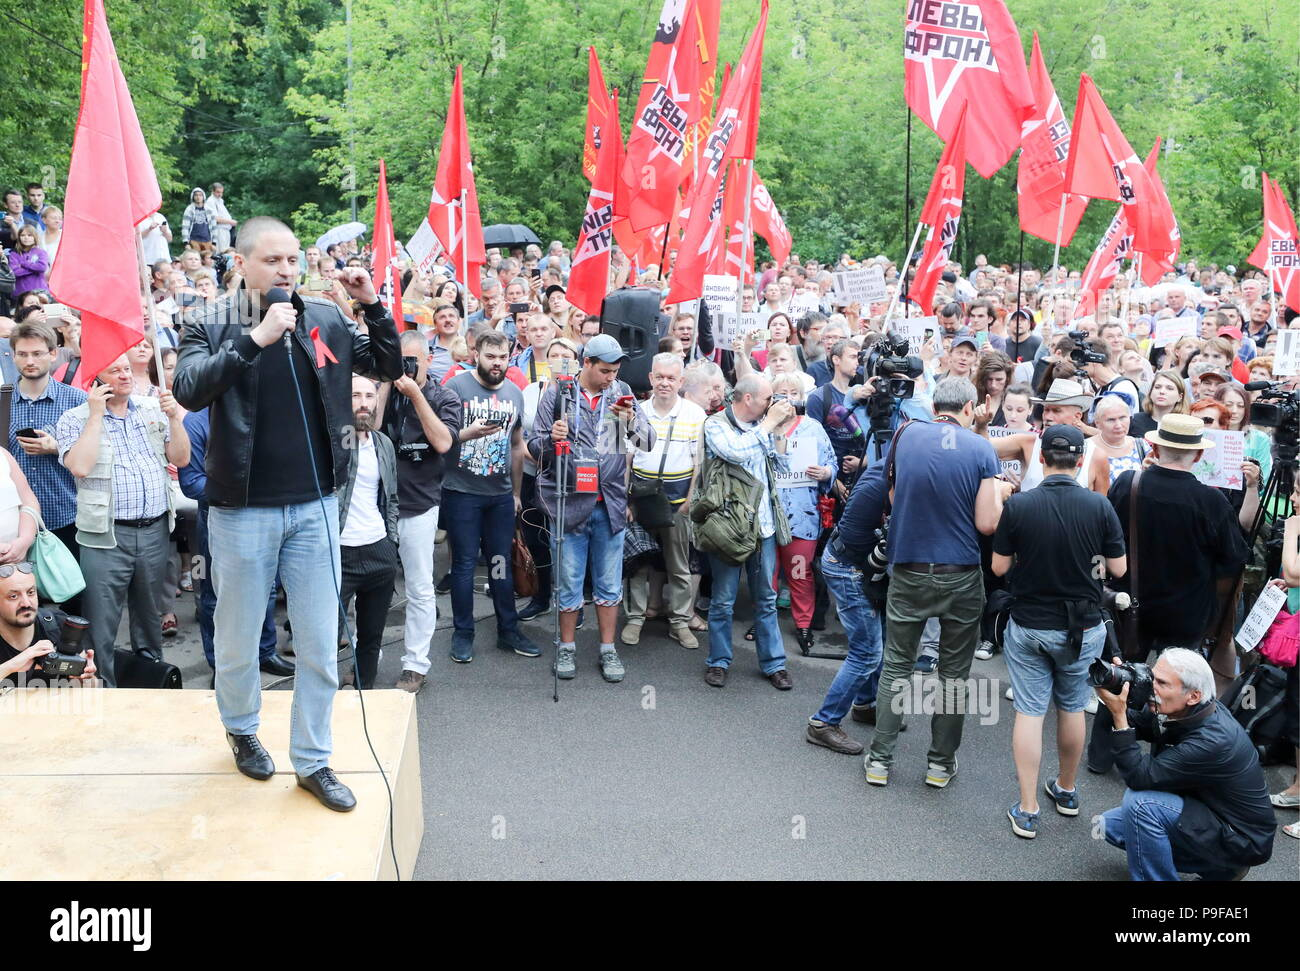 Moscow, Russia. 18th July, 2018. MOSCOW, RUSSIA - JULY 18, 2018: Left Front coordinator Sergei Udaltsov (L) addresses Moscow's Sokolniki Hyde Park rally against a Russian government proposal to raise the retirement age from 60 to 65 for men, and from 55 to 63 for women within the next two decades. Sergei Savostyanov/TASS Credit: ITAR-TASS News Agency/Alamy Live News - Stock Image